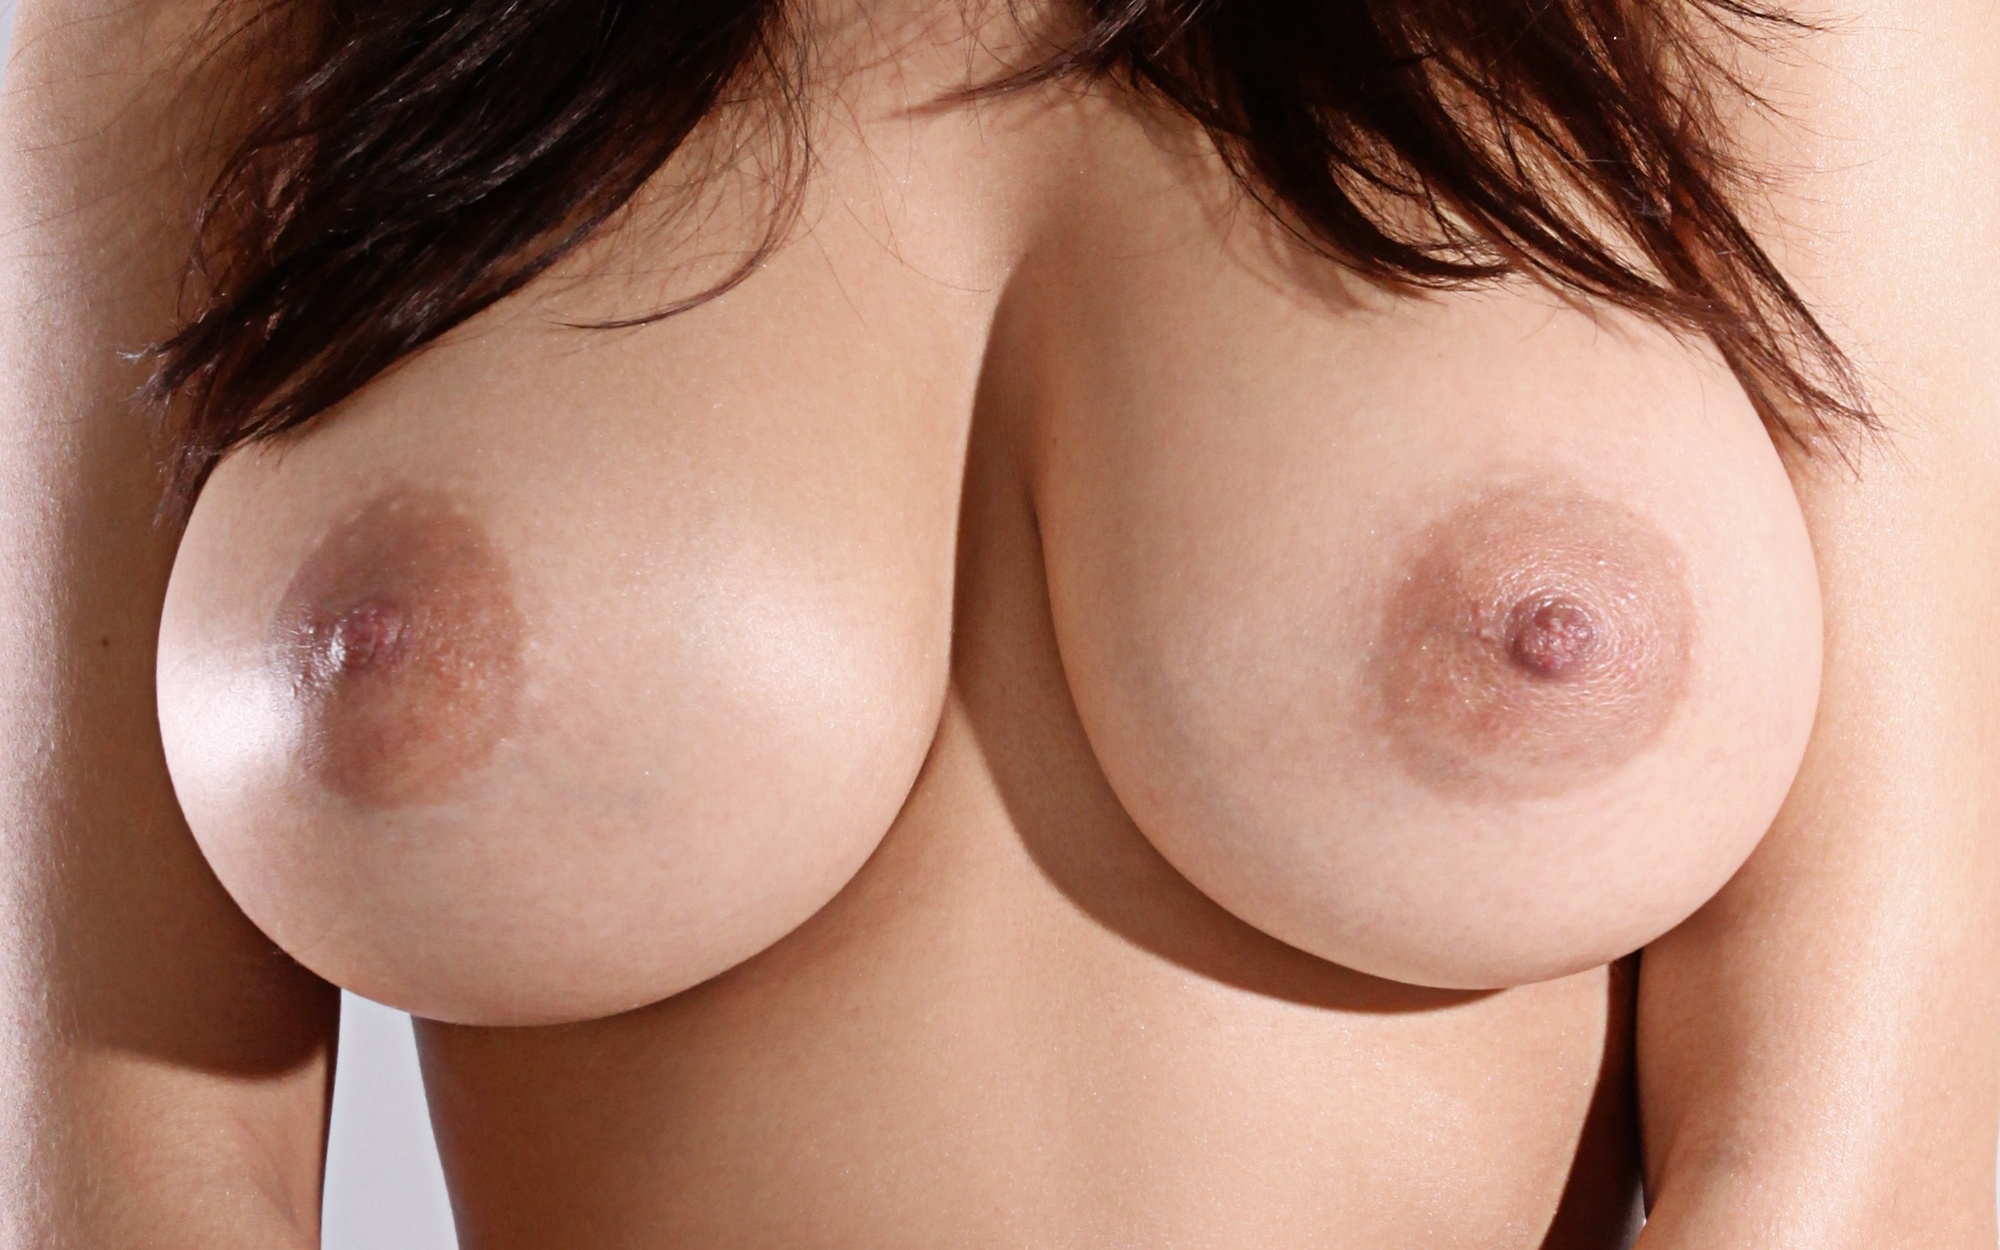 Big breasts big nipples